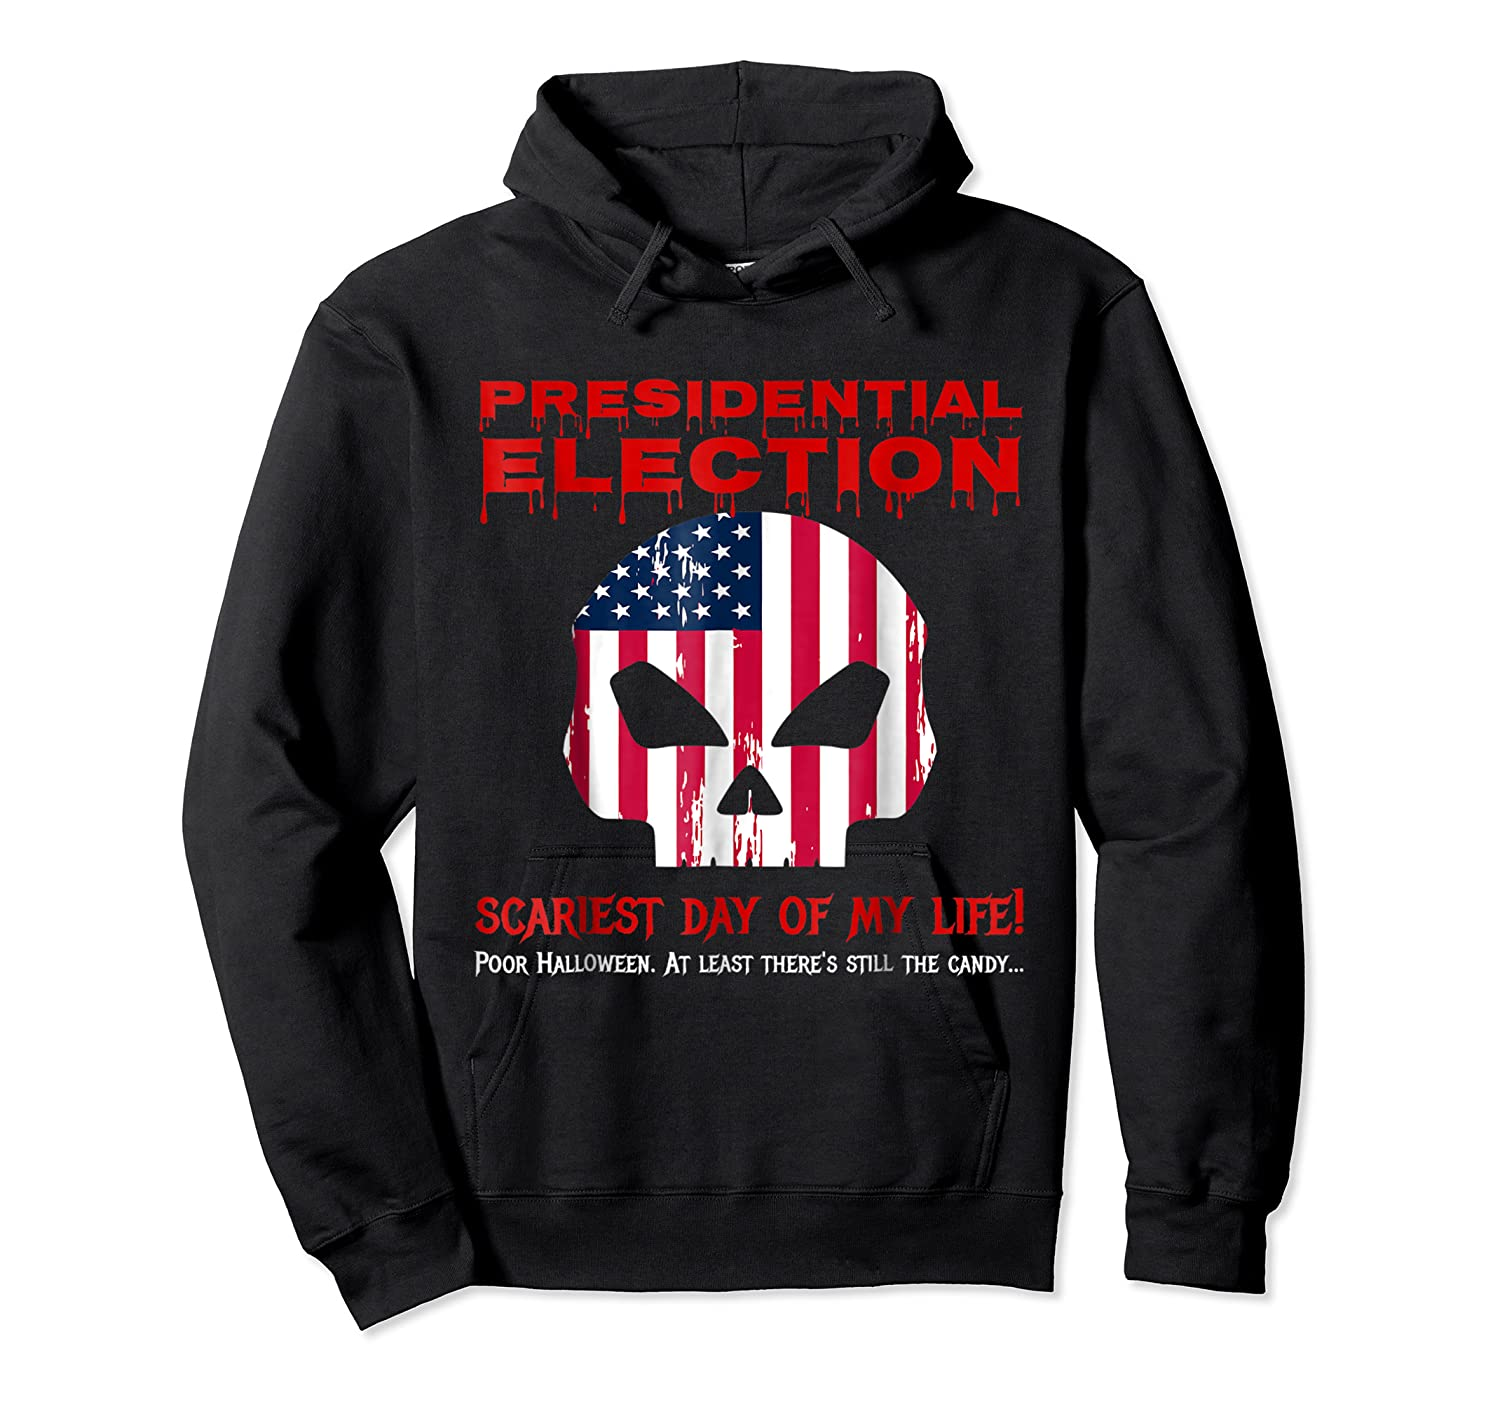 Presidential Election Scariest Day Of My Life Shirts Unisex Pullover Hoodie